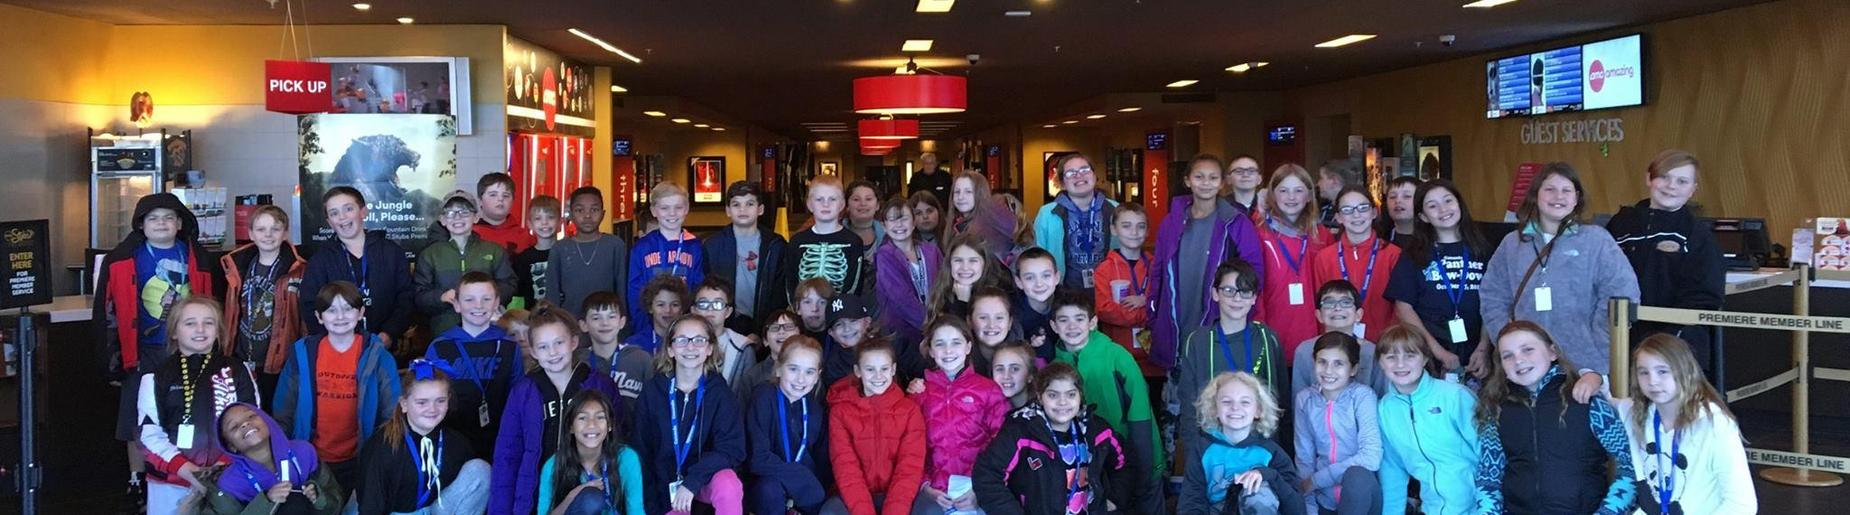 5th Graders at AMC Theater